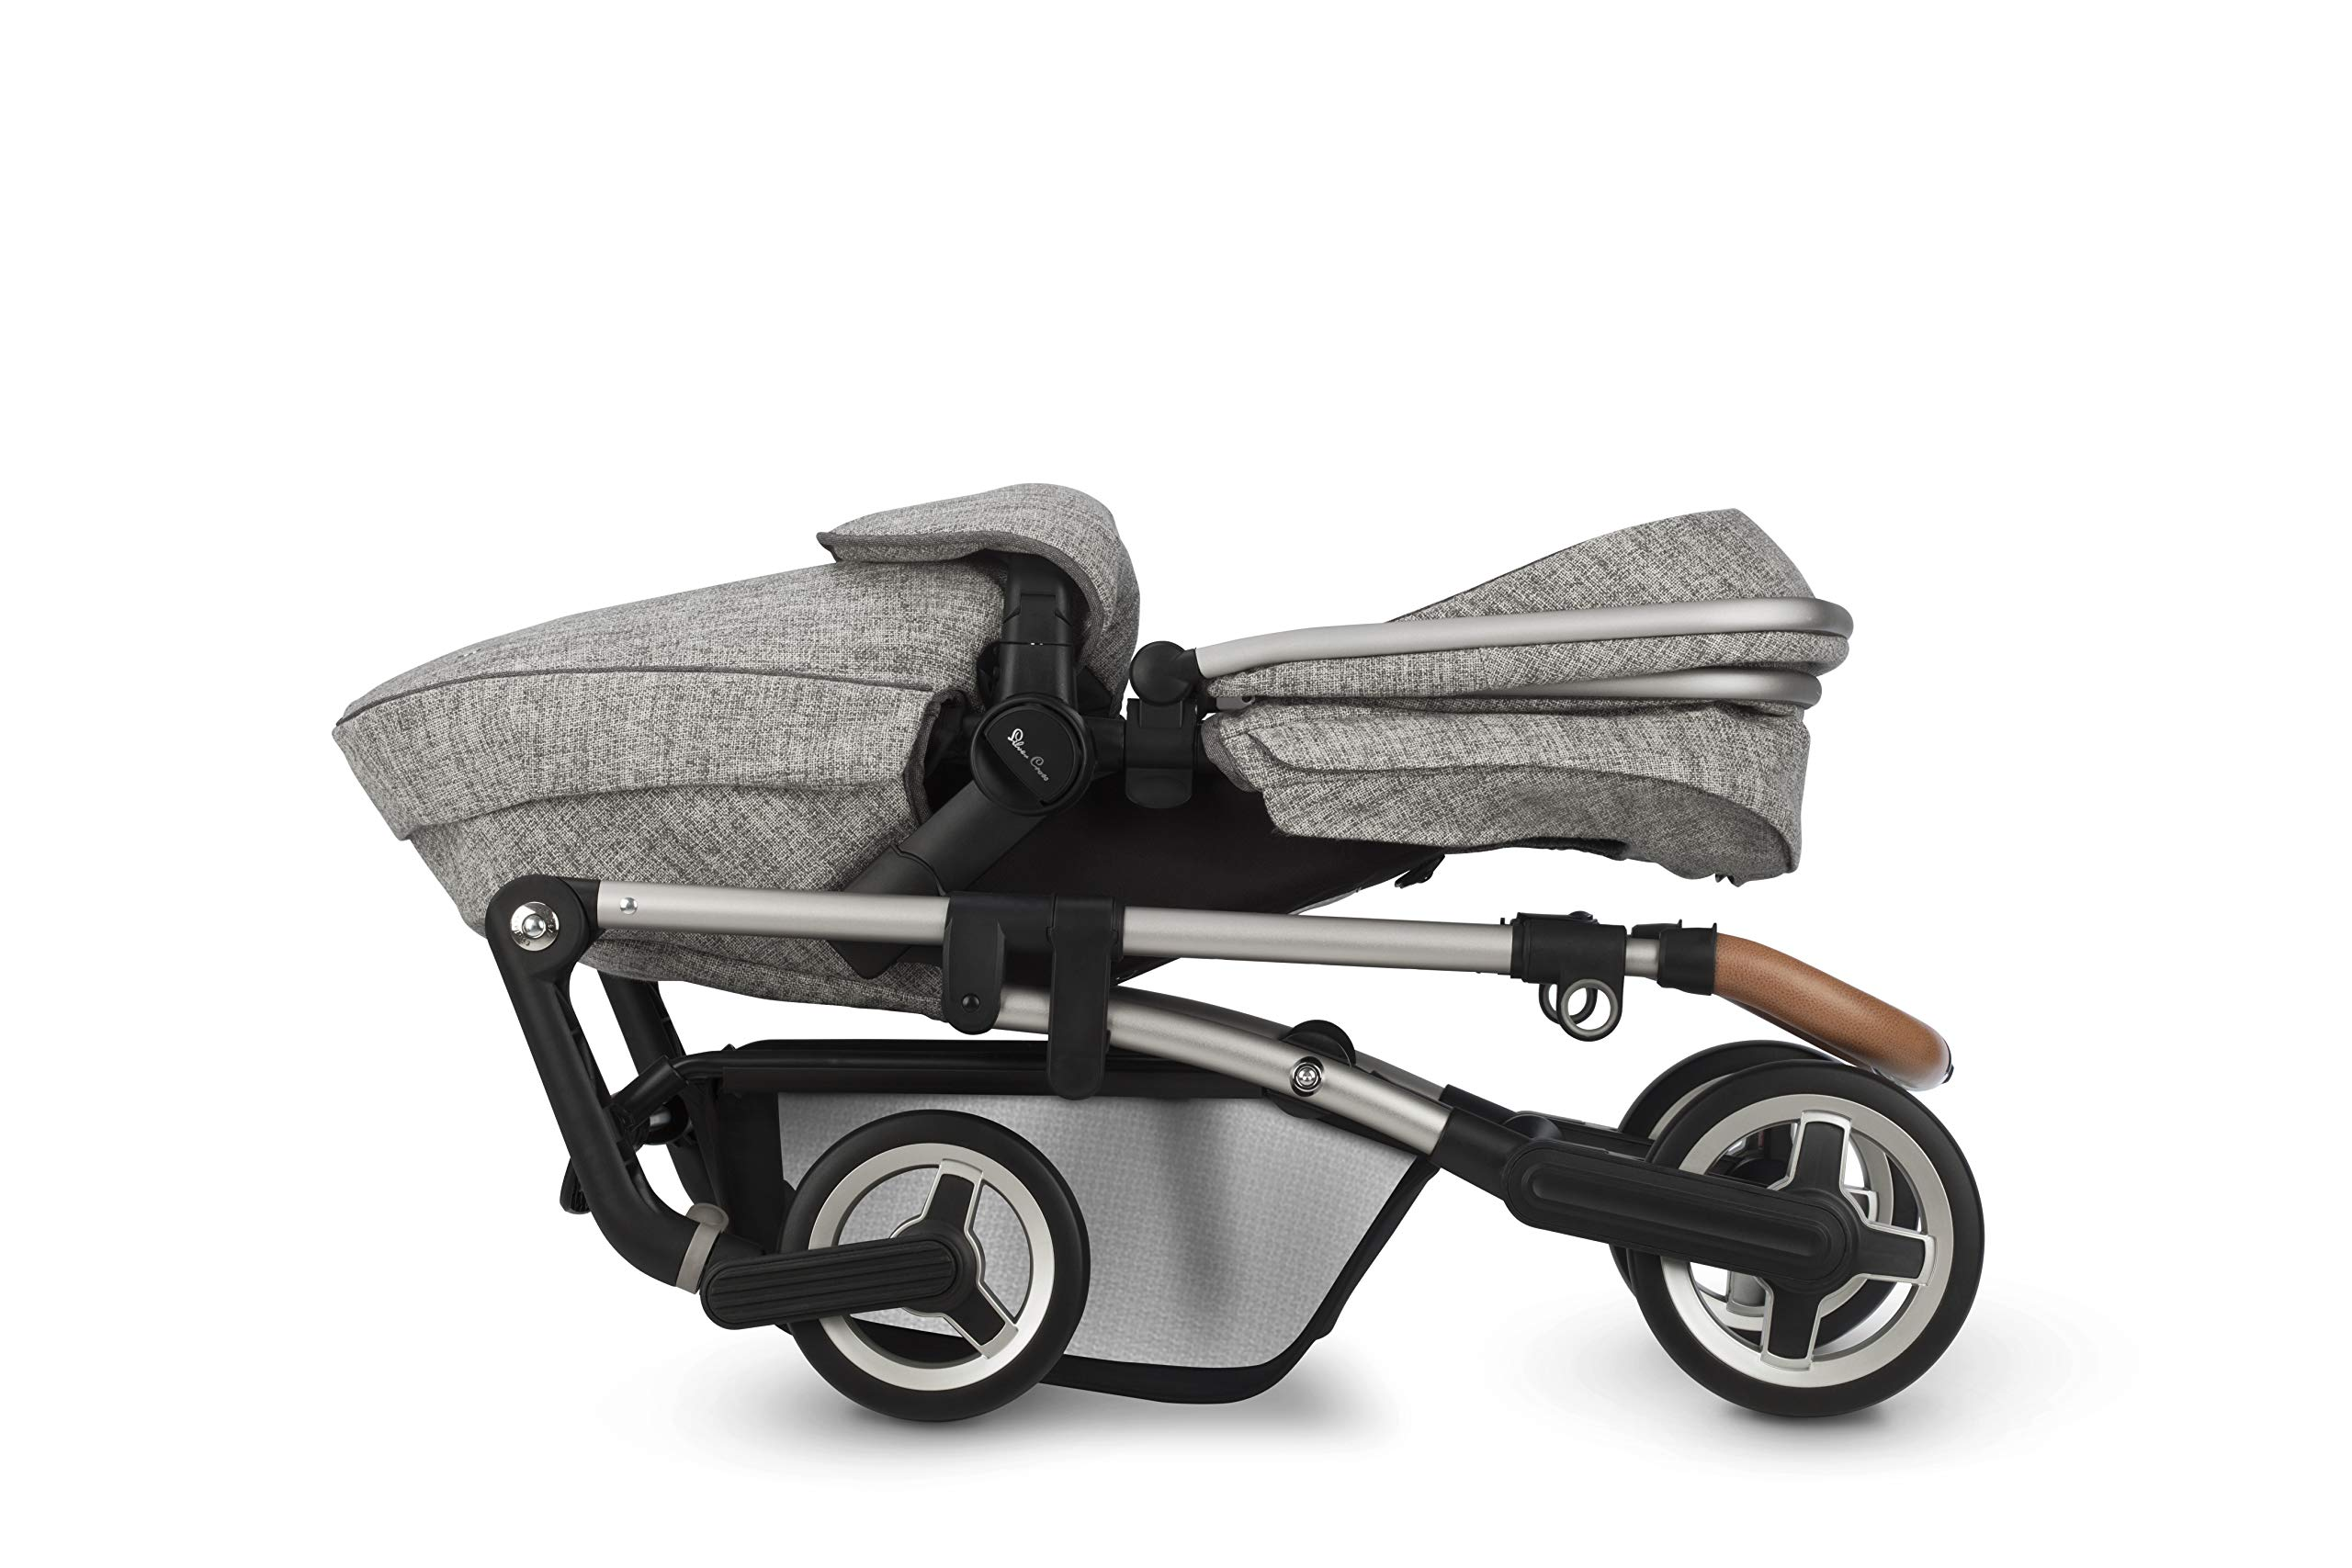 Silver Cross Wayfarer Camden Silver Cross Complete pram system that includes everything you need from birth to toddler Includes a lie-flat carrycot for your new born that is suitable for overnight sleeping Compact, lightweight and convenient, hardwearing and durable 7